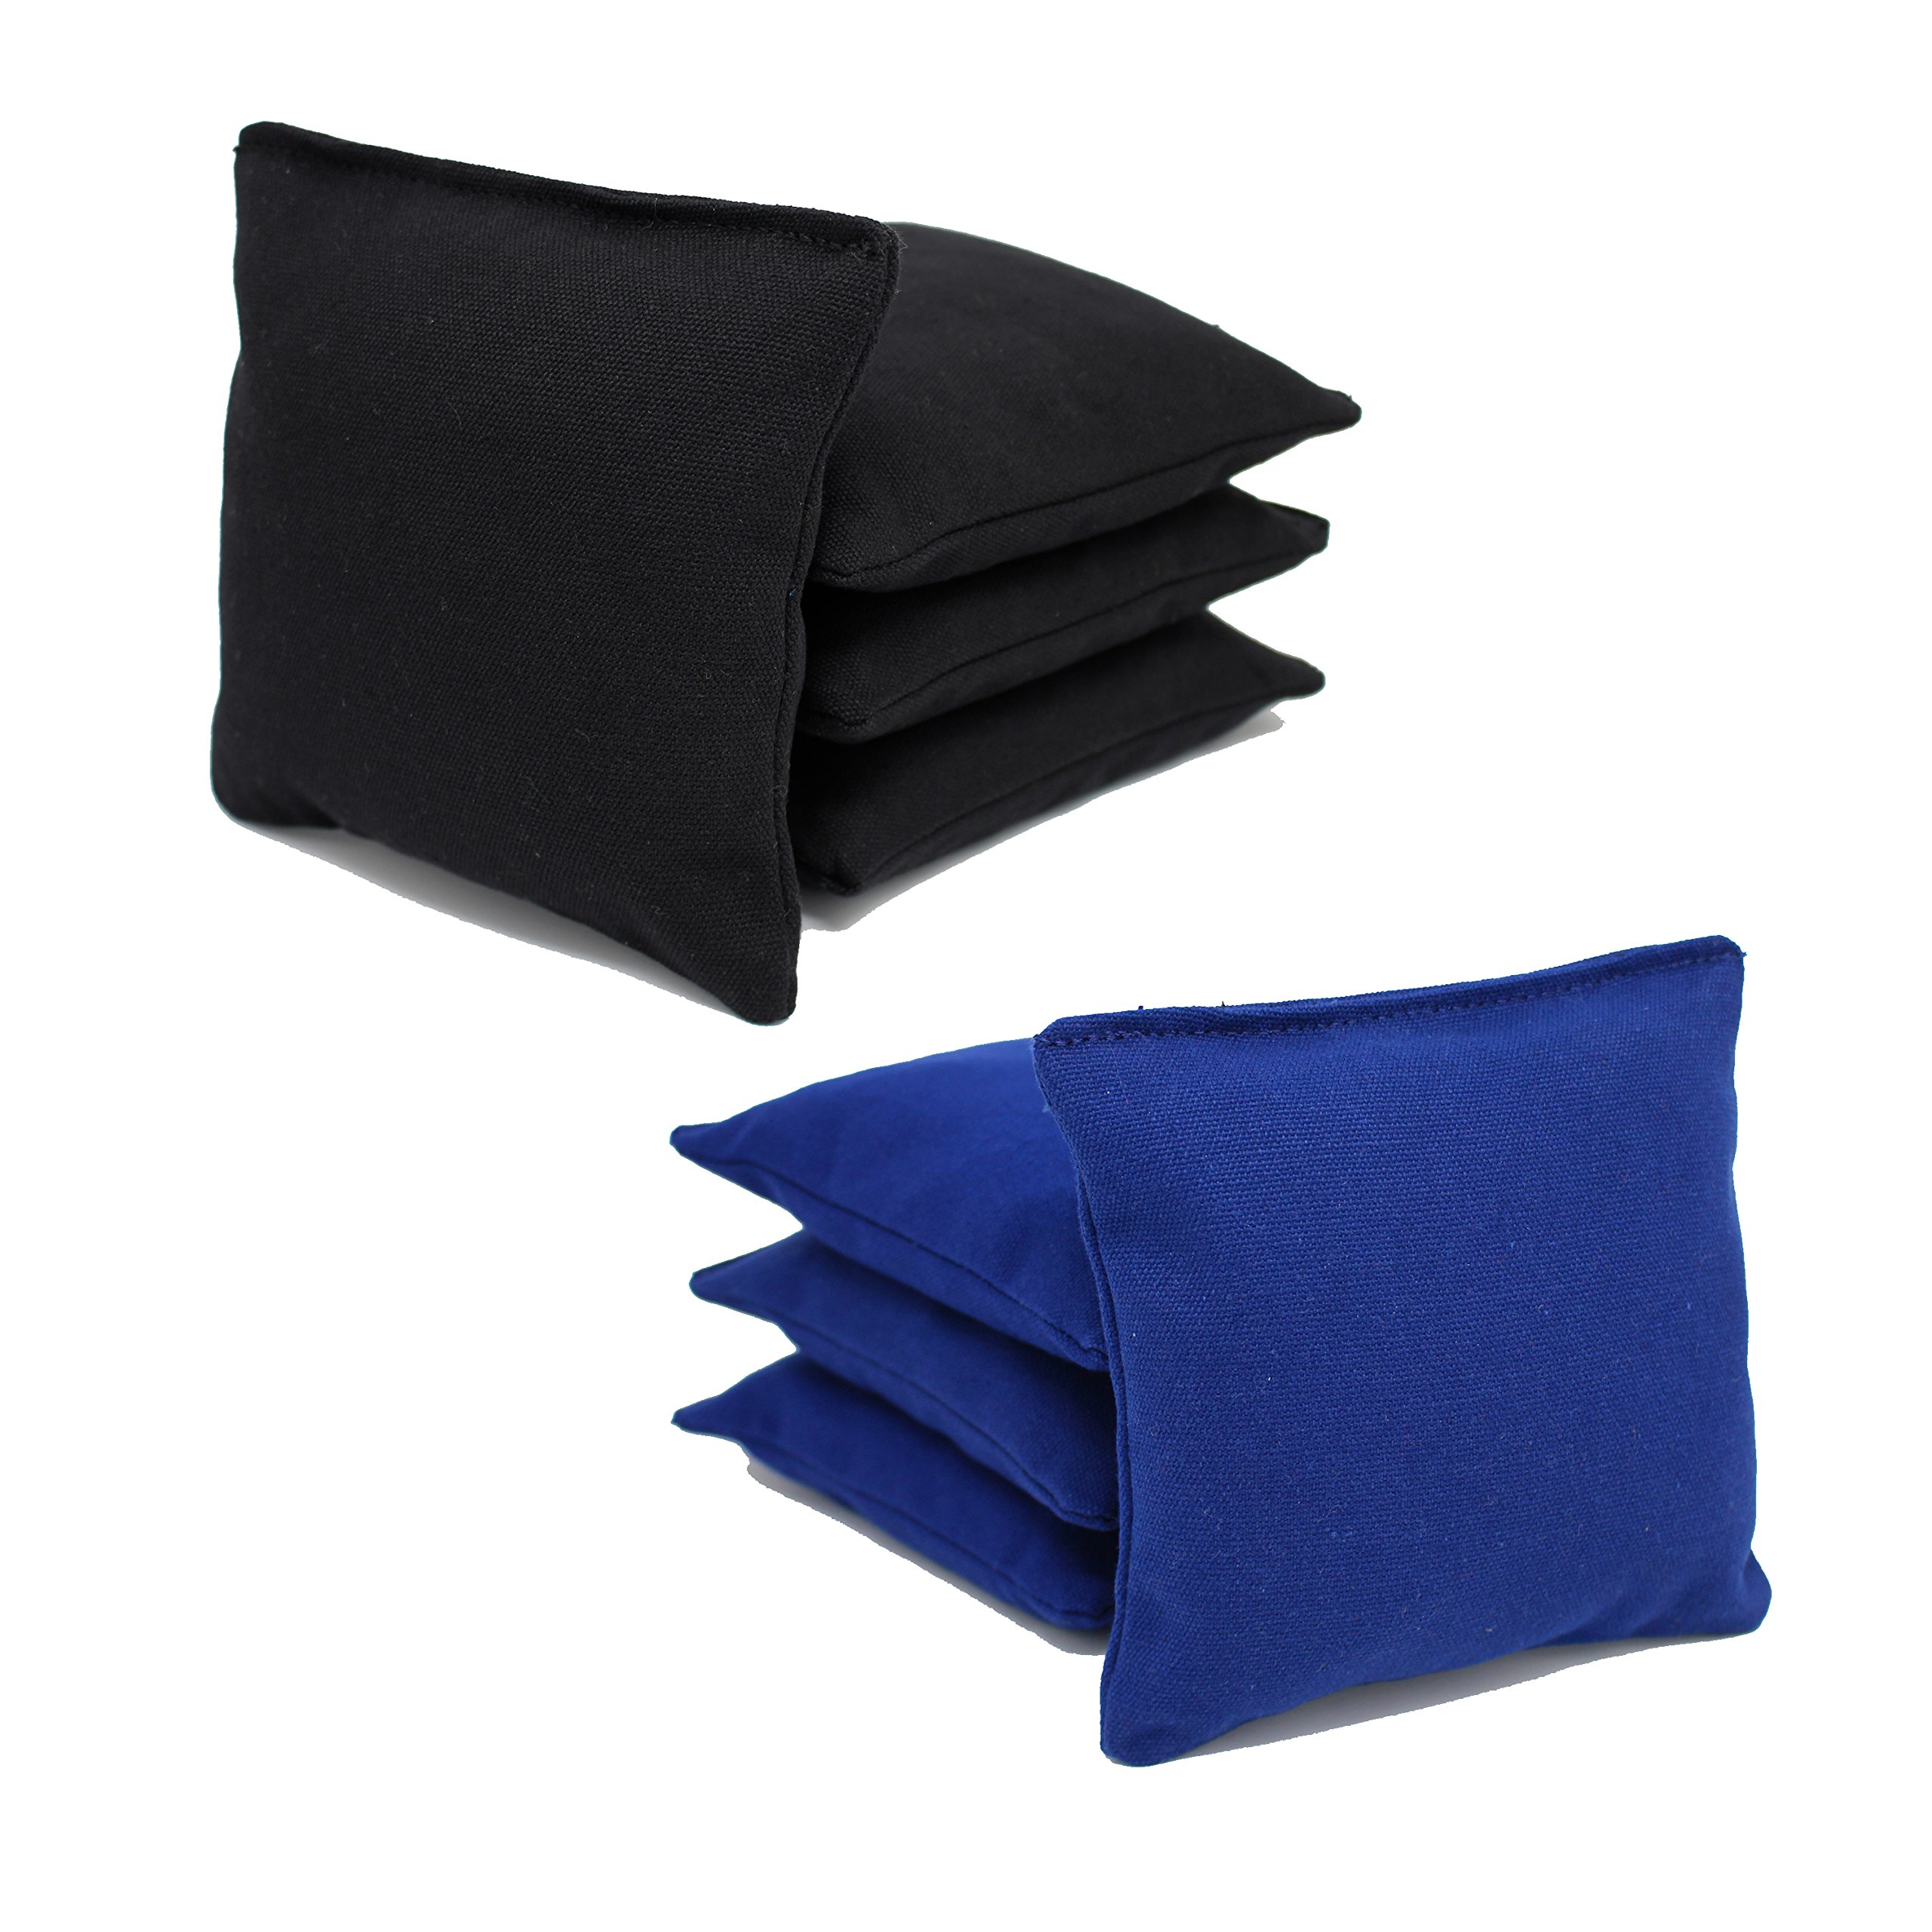 Free Donkey Sports ACA Regulation Cornhole Bags (Set of 8) (Black and Royal) 25+ Colors to Choose from.